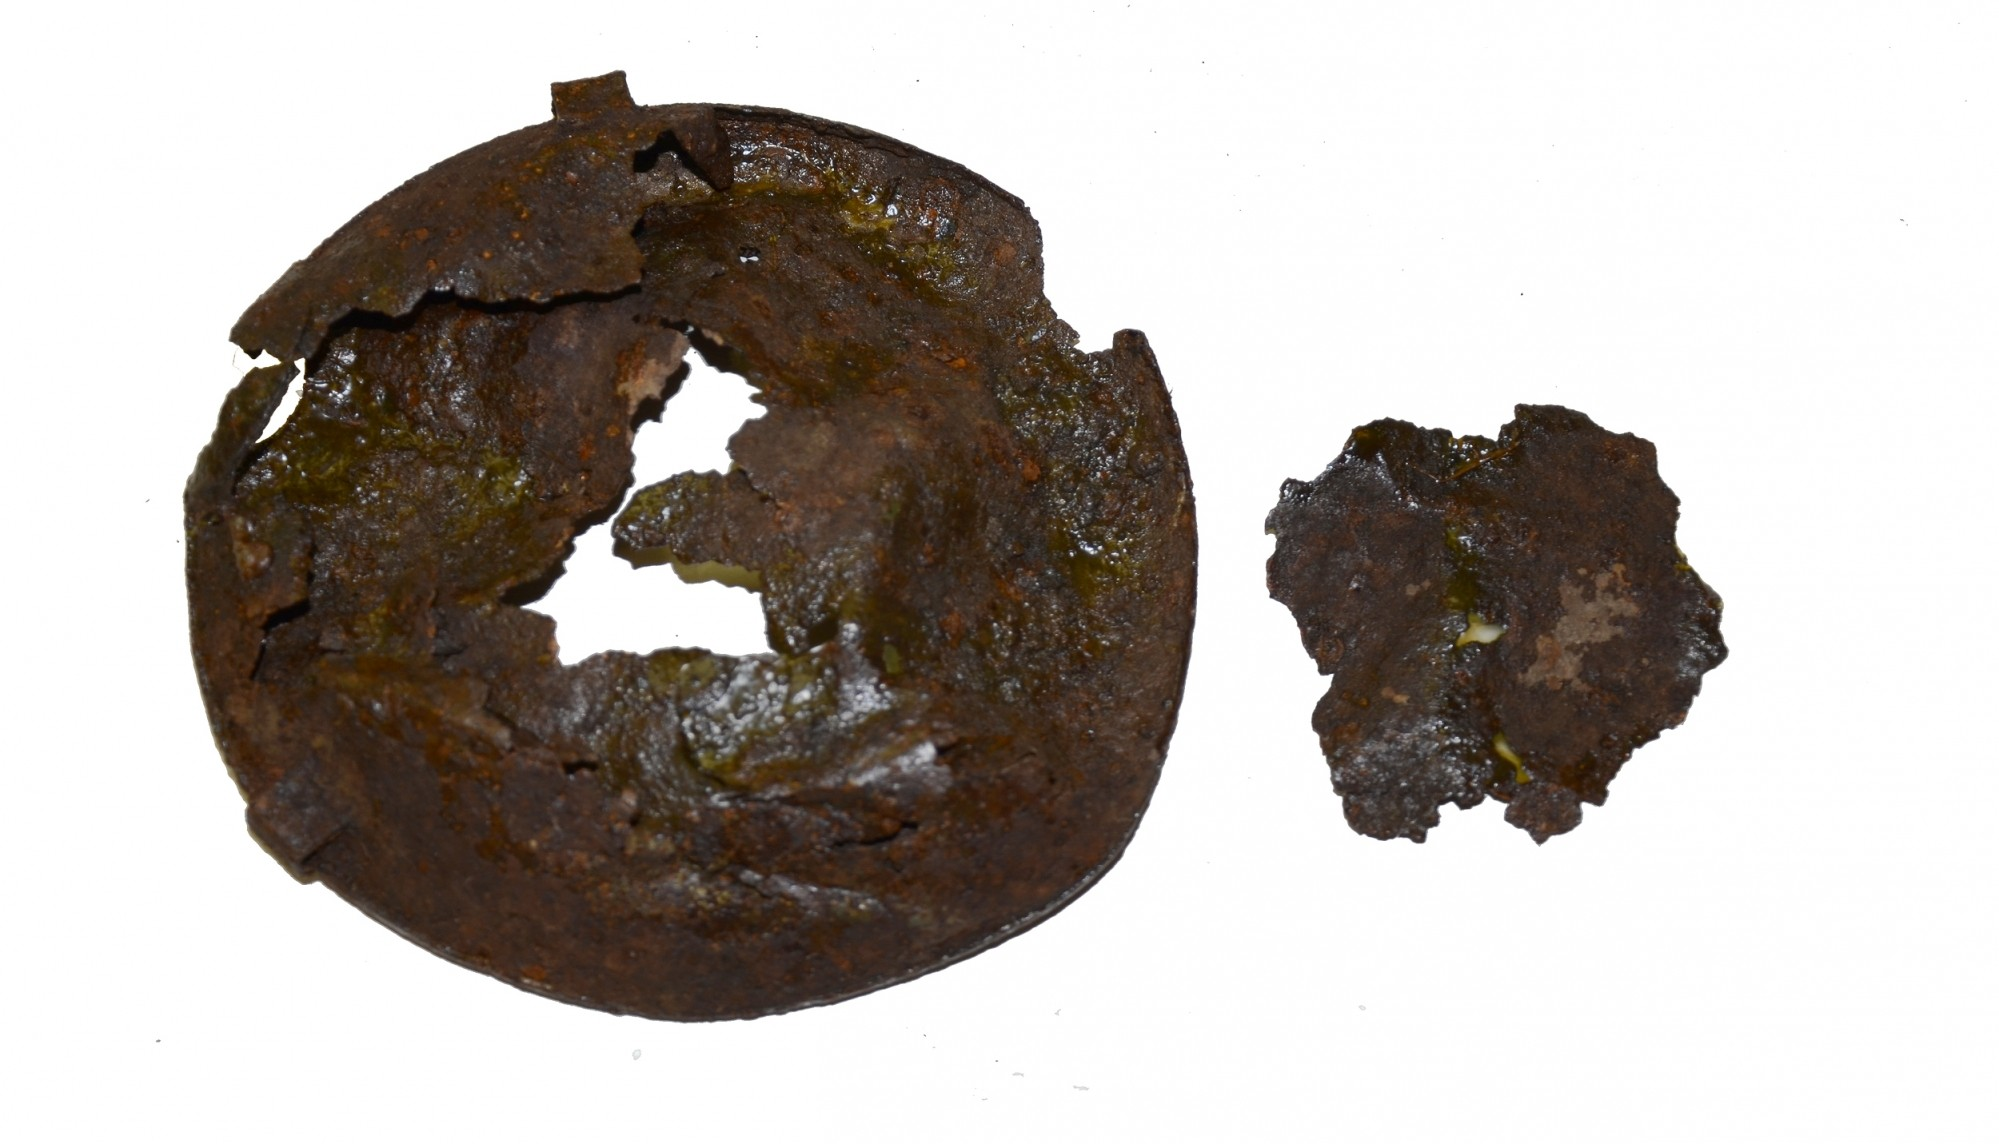 REMAINS OF A US CANTEEN RECOVERED AT GETTYSBURG